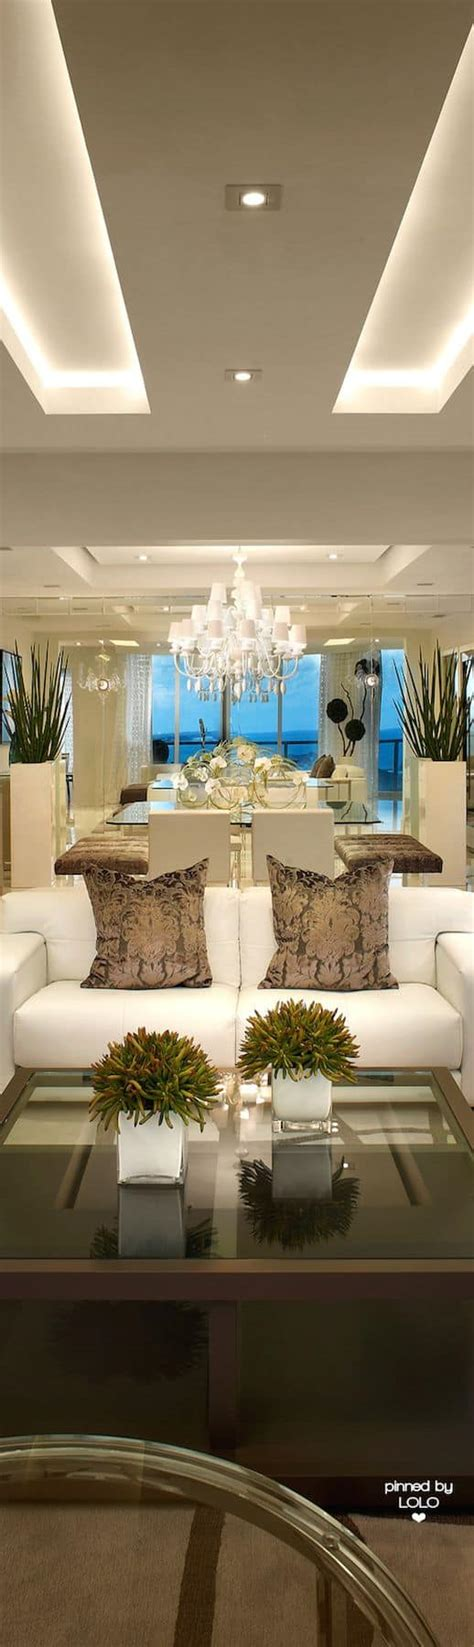 31 epic gypsum ceiling designs for your home